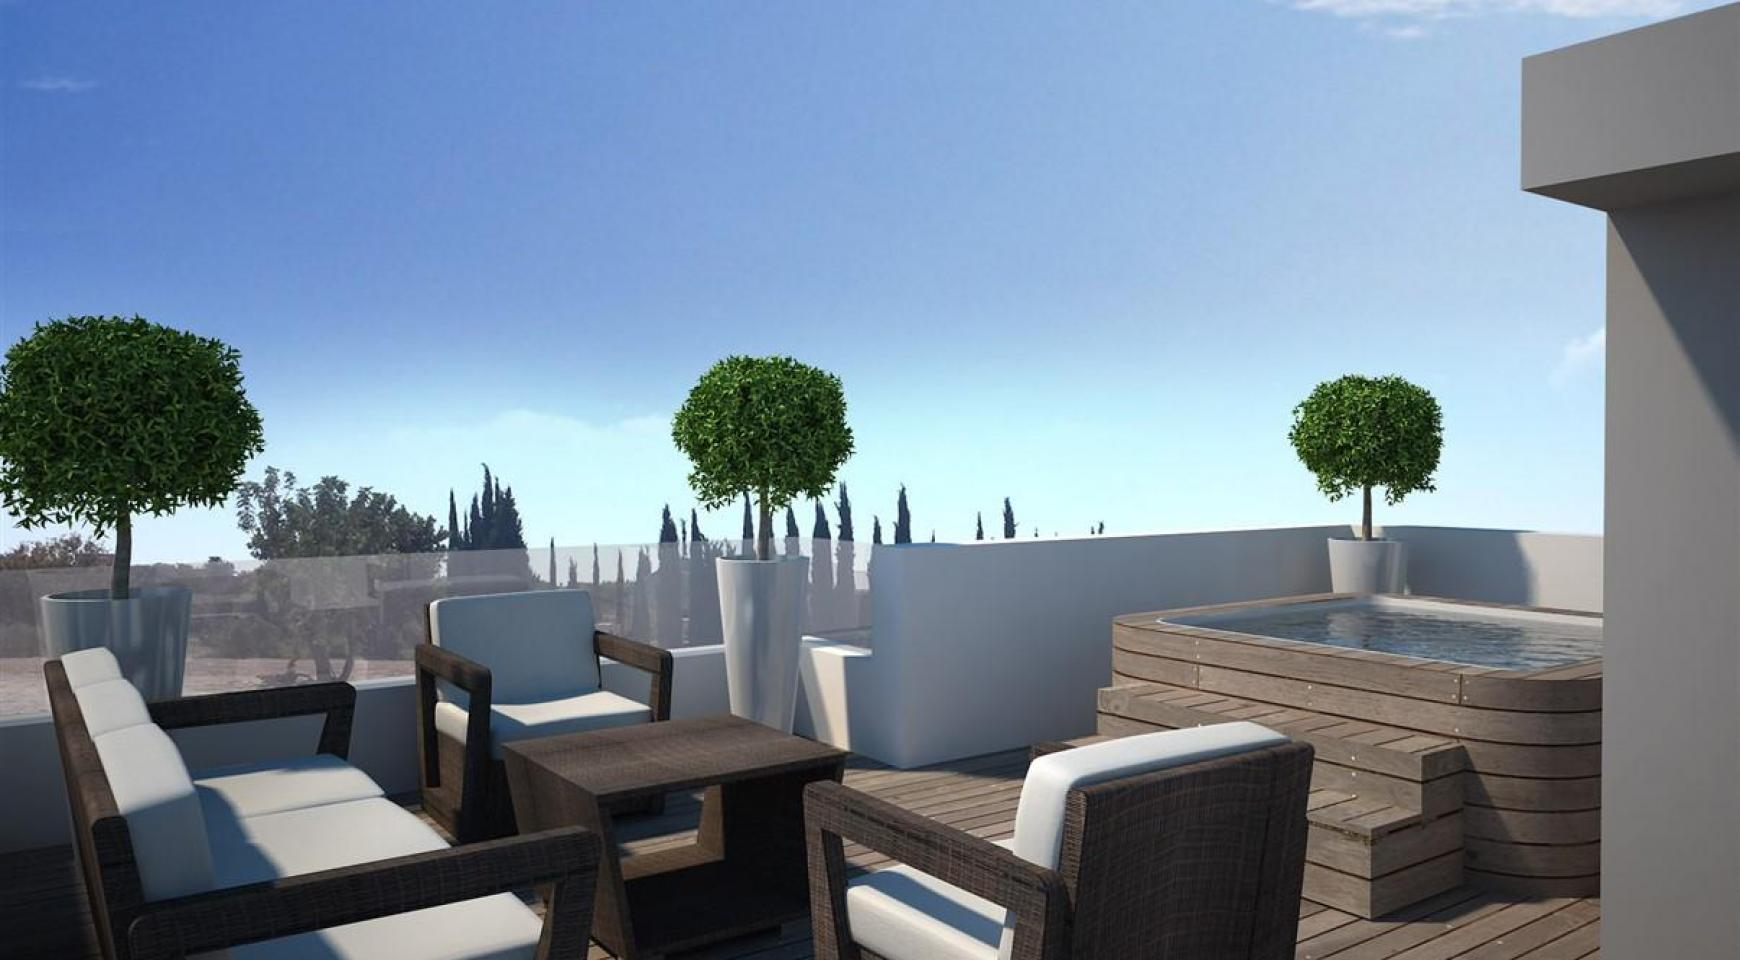 3 Bedroom Villa within a New Project - 40